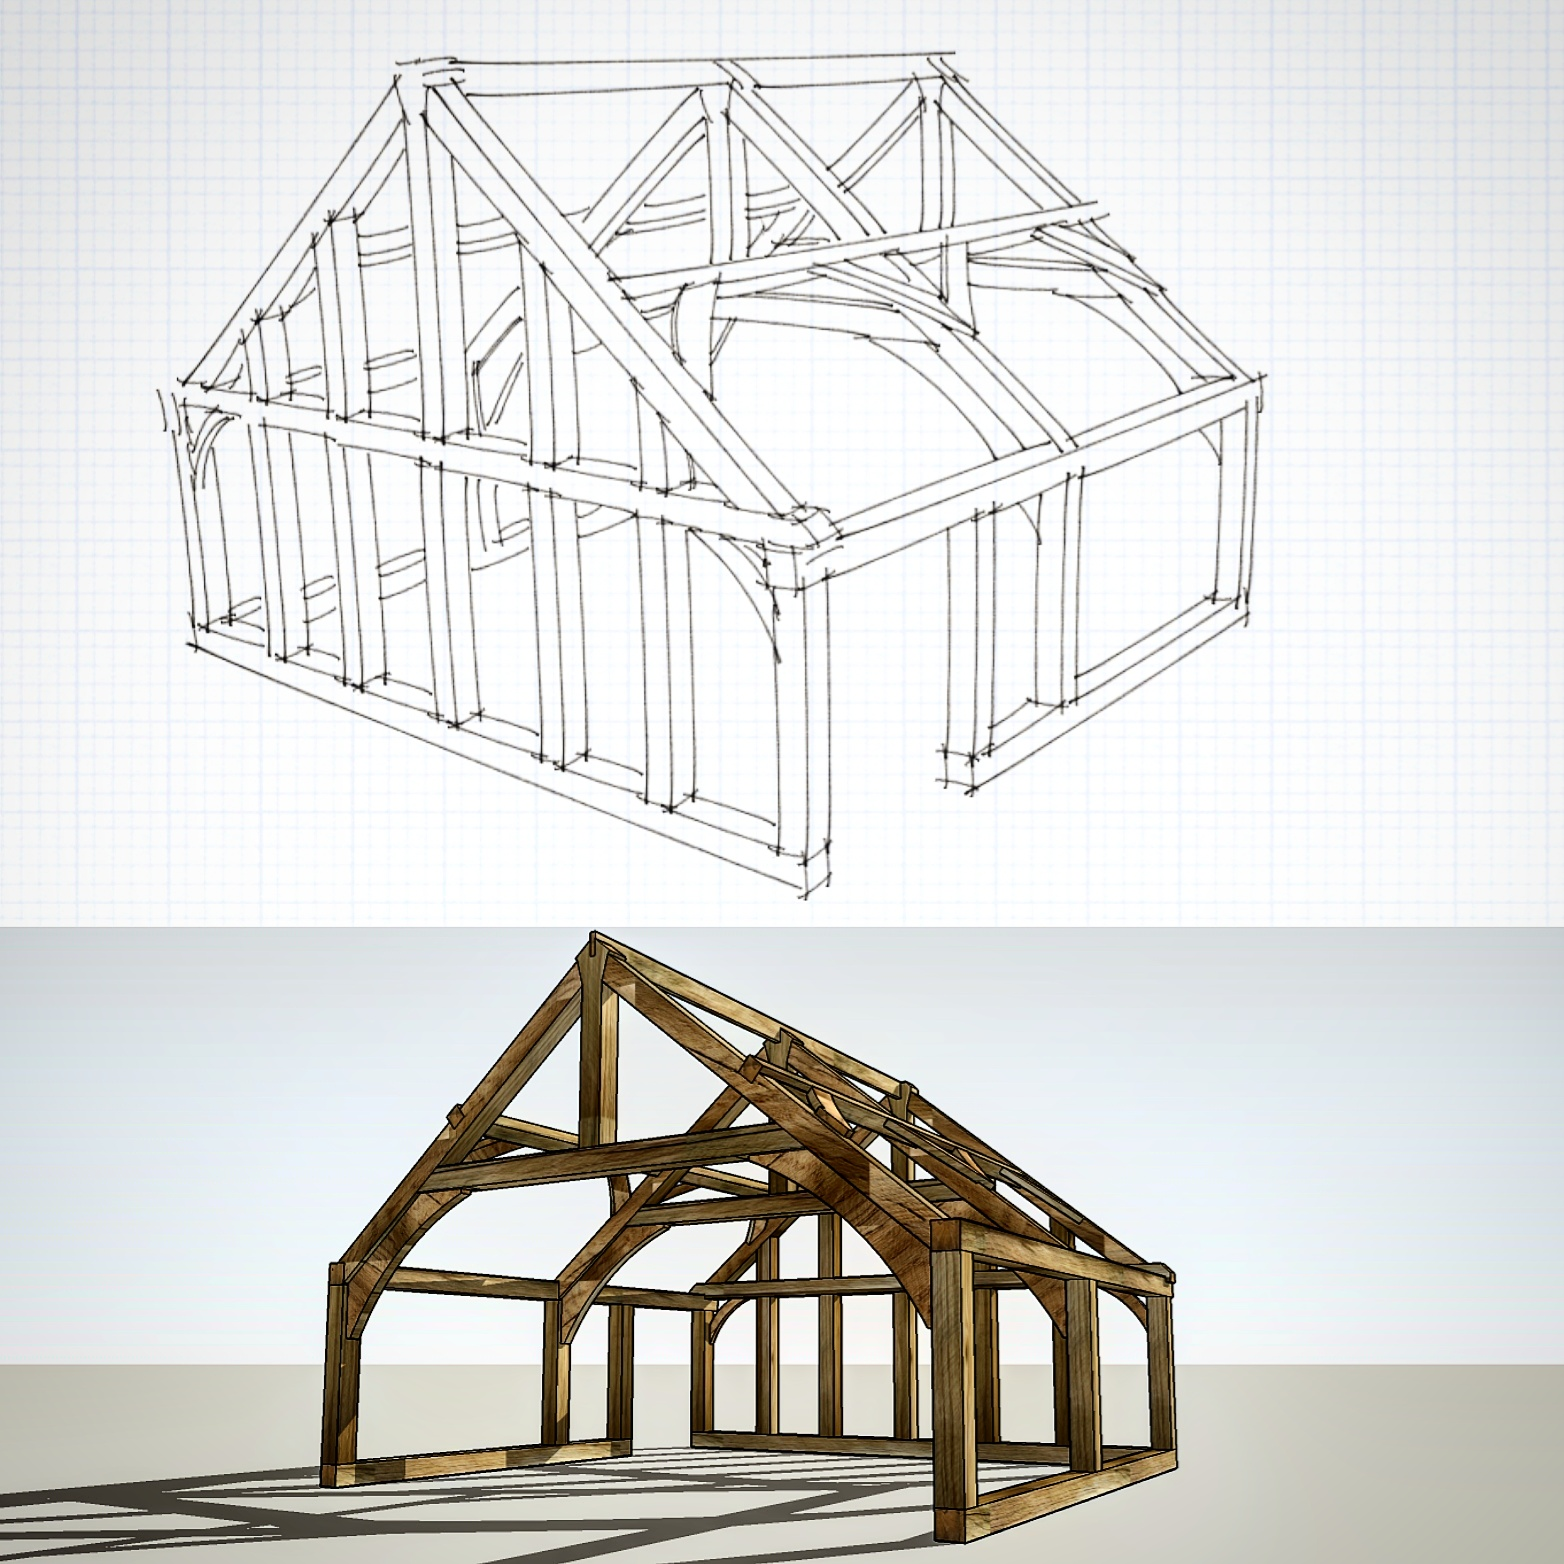 Here you see the oak frame design from basic sketch to finished article